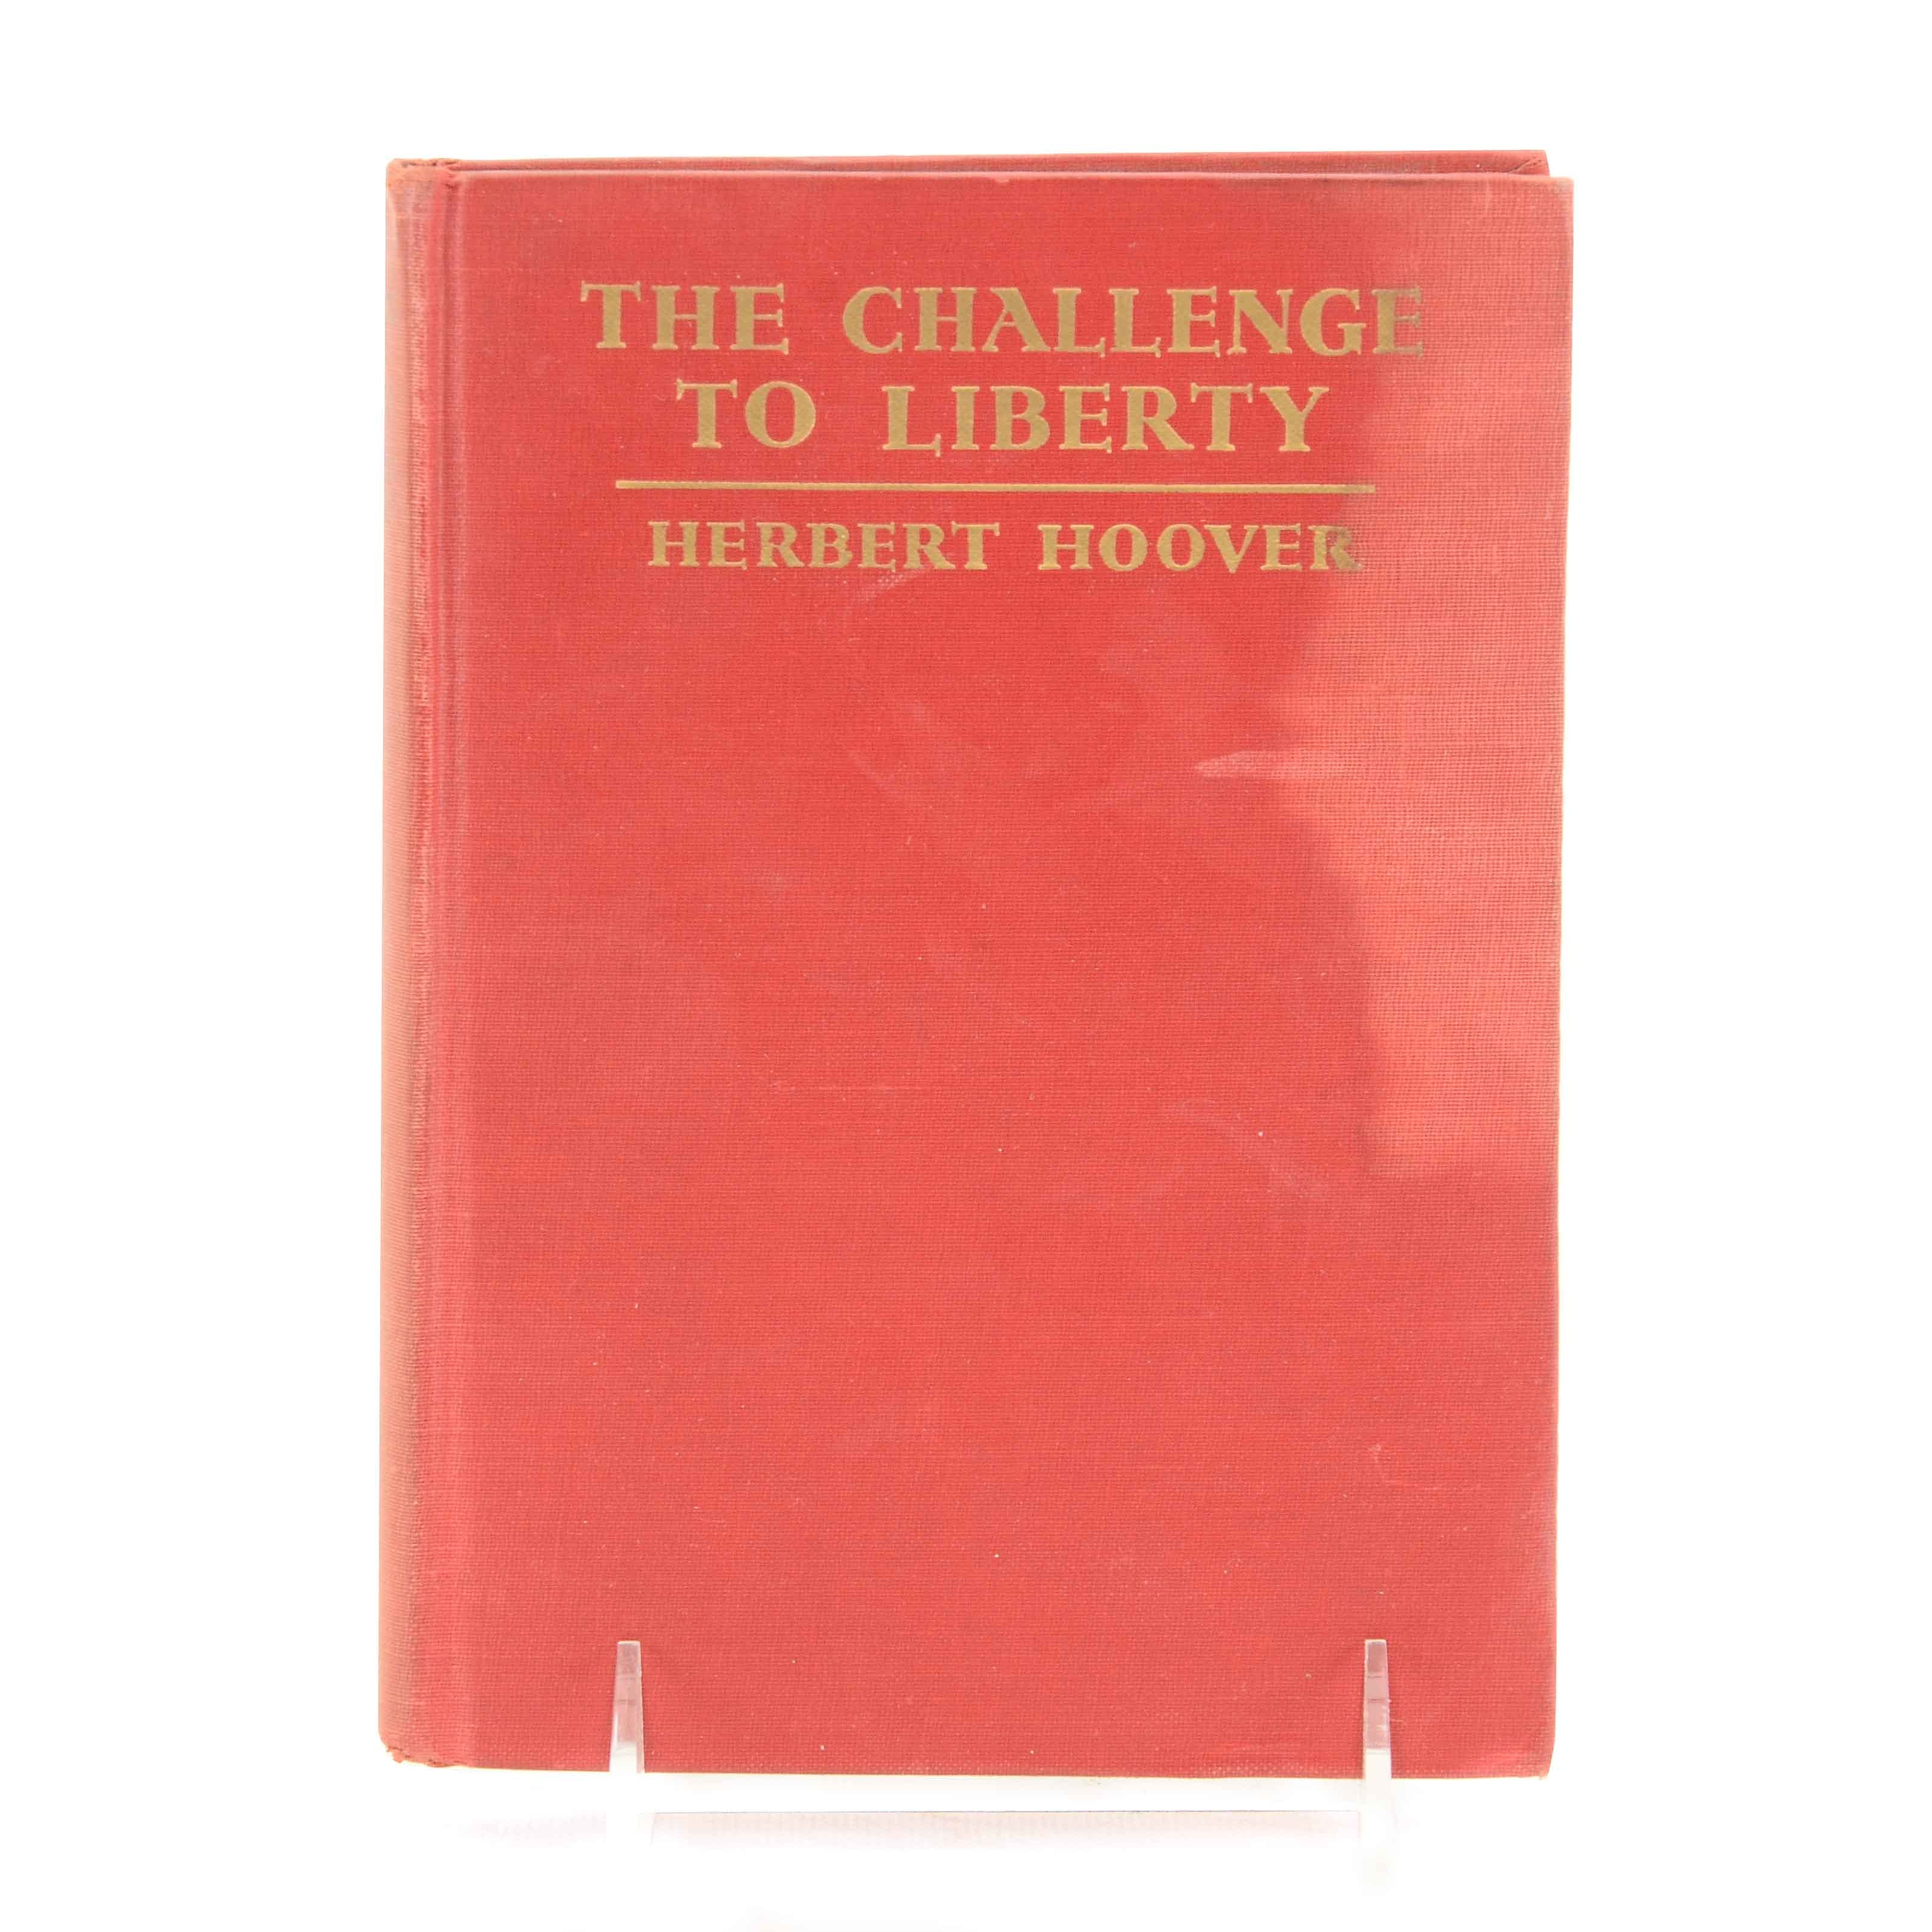 Herbert Hoover Signed 'The Challenge of Liberty' in Hardcover